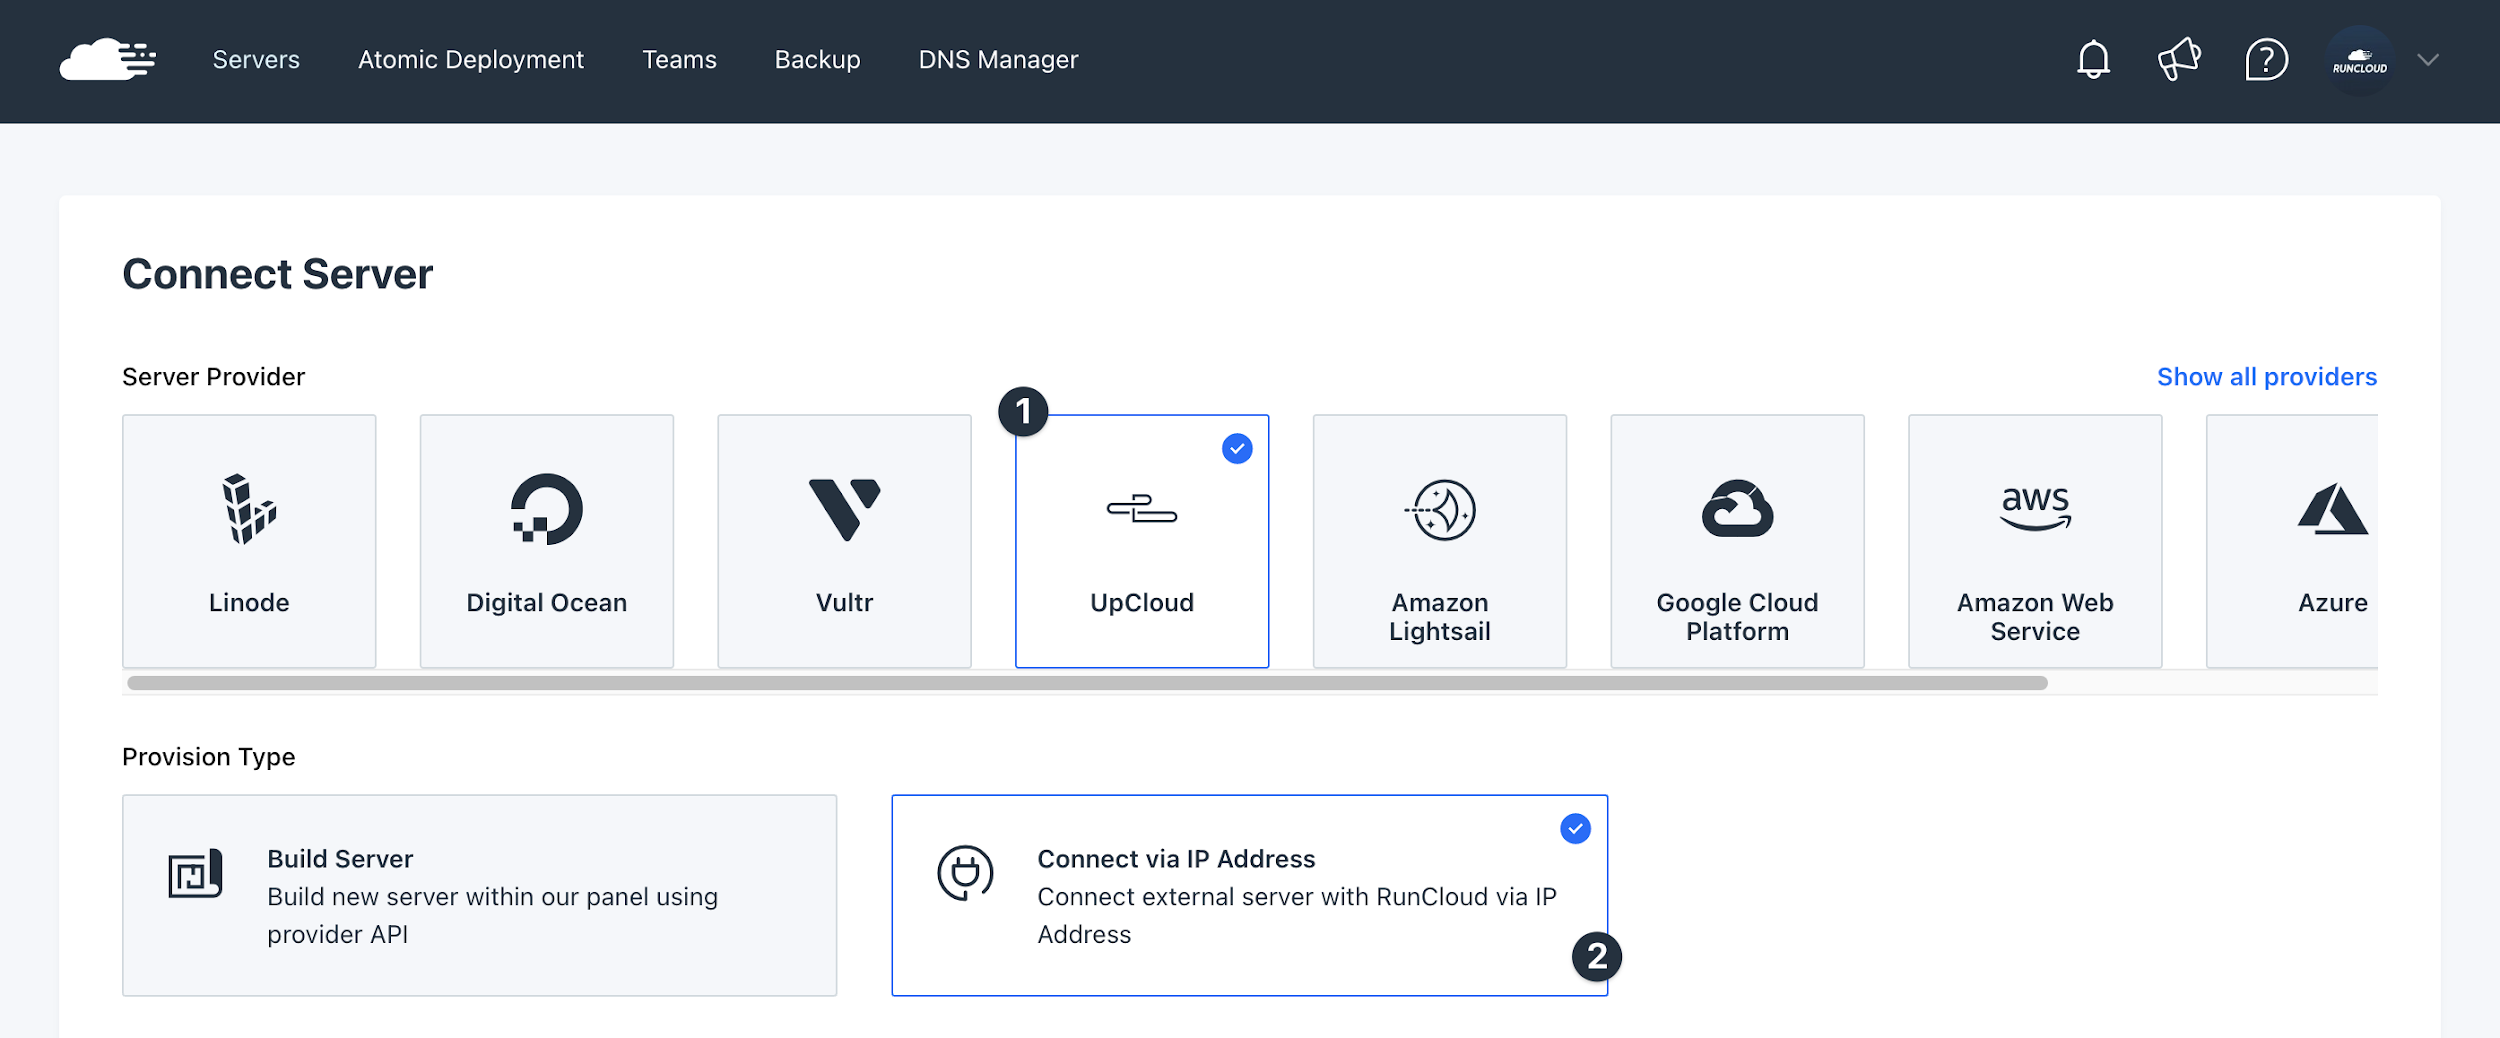 Select Server Provider UpCloud